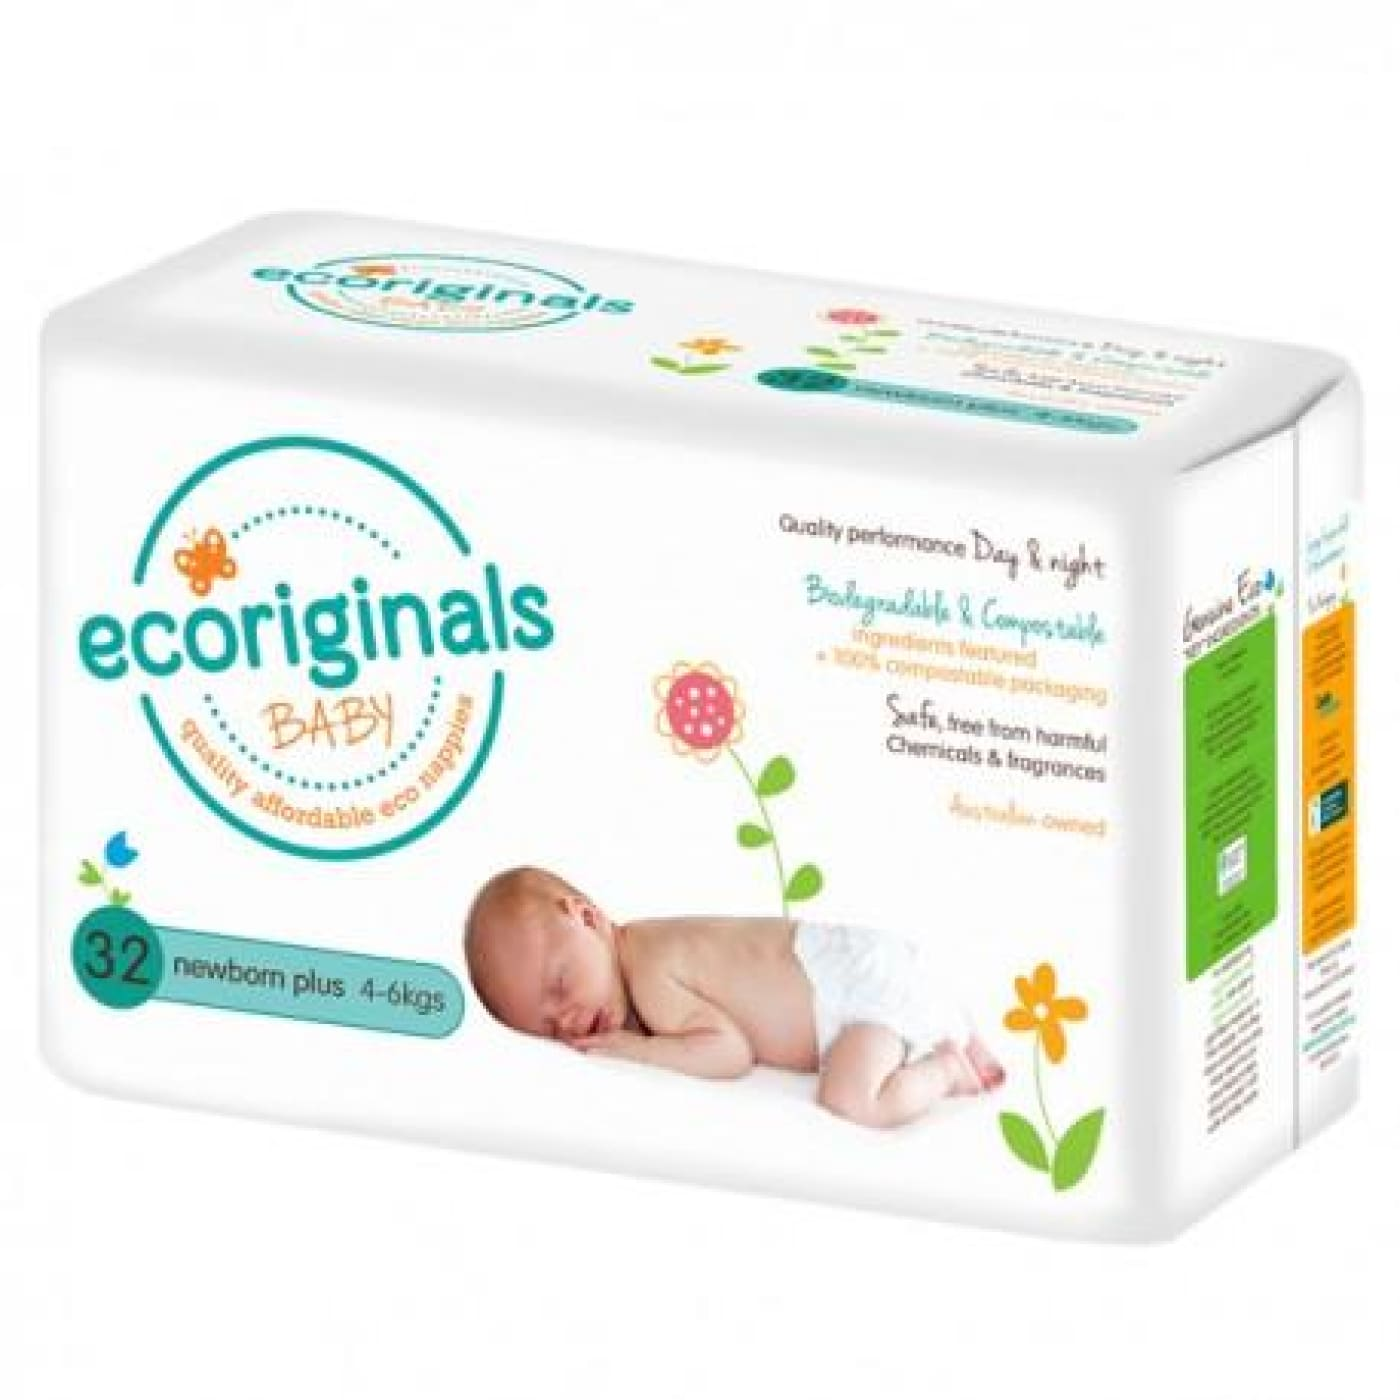 Ecoriginals Eco Disposable Nappies - Newborn Plus - BATHTIME & CHANGING - NAPPIES/WIPES/ACC ECO RANGE